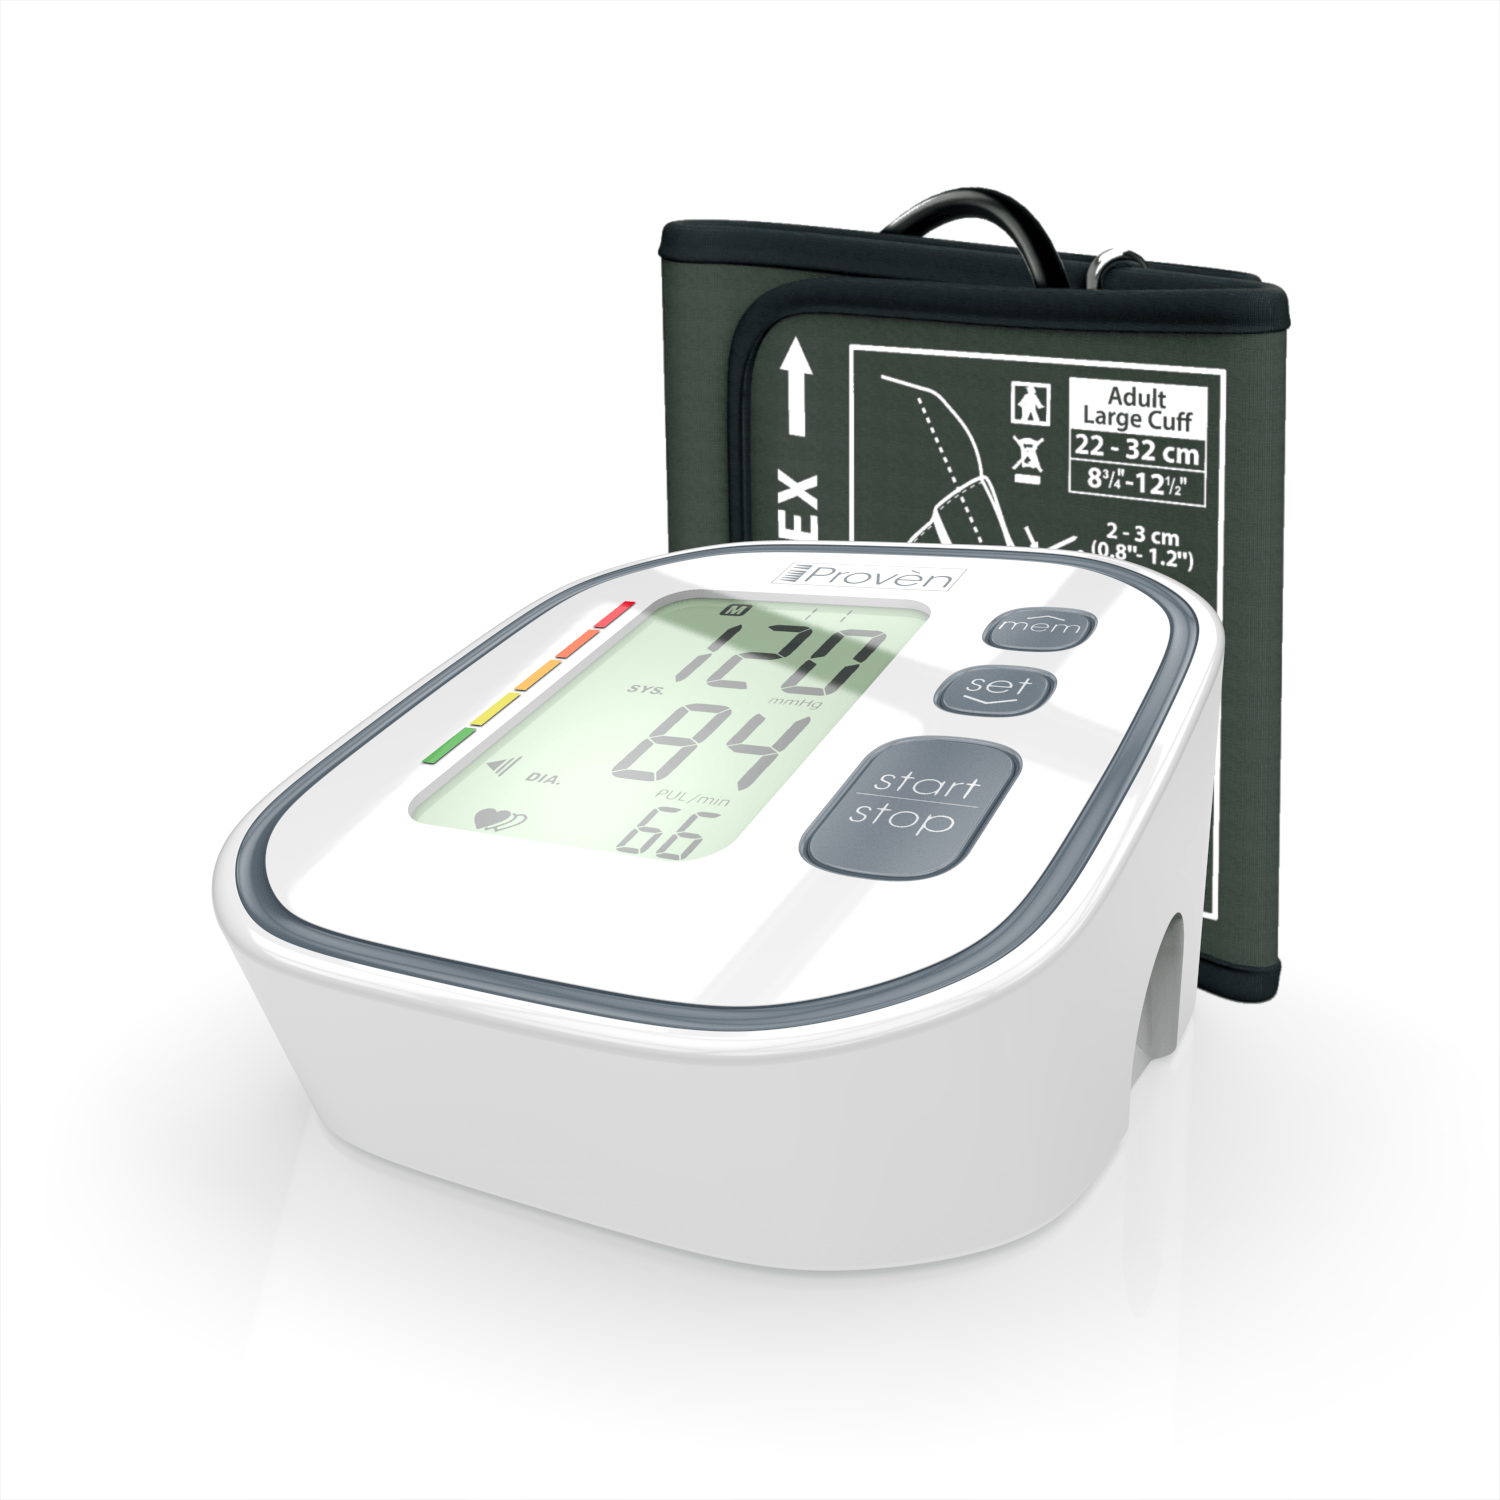 iProvèn launches compact Blood Pressure Monitor BPM-634